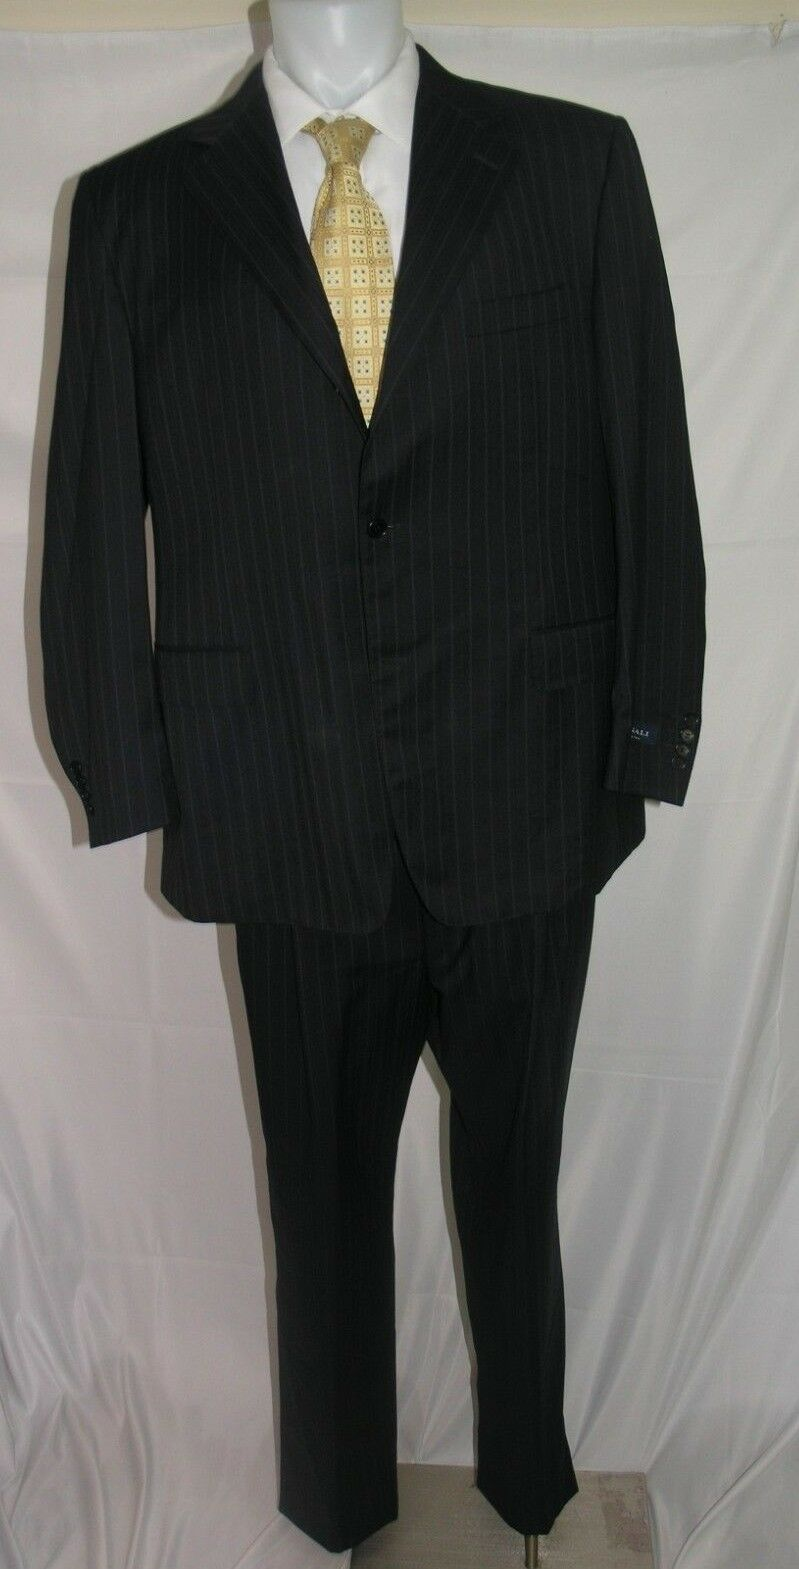 Canali Three Roll Two Suit 48 L 39 W NWD